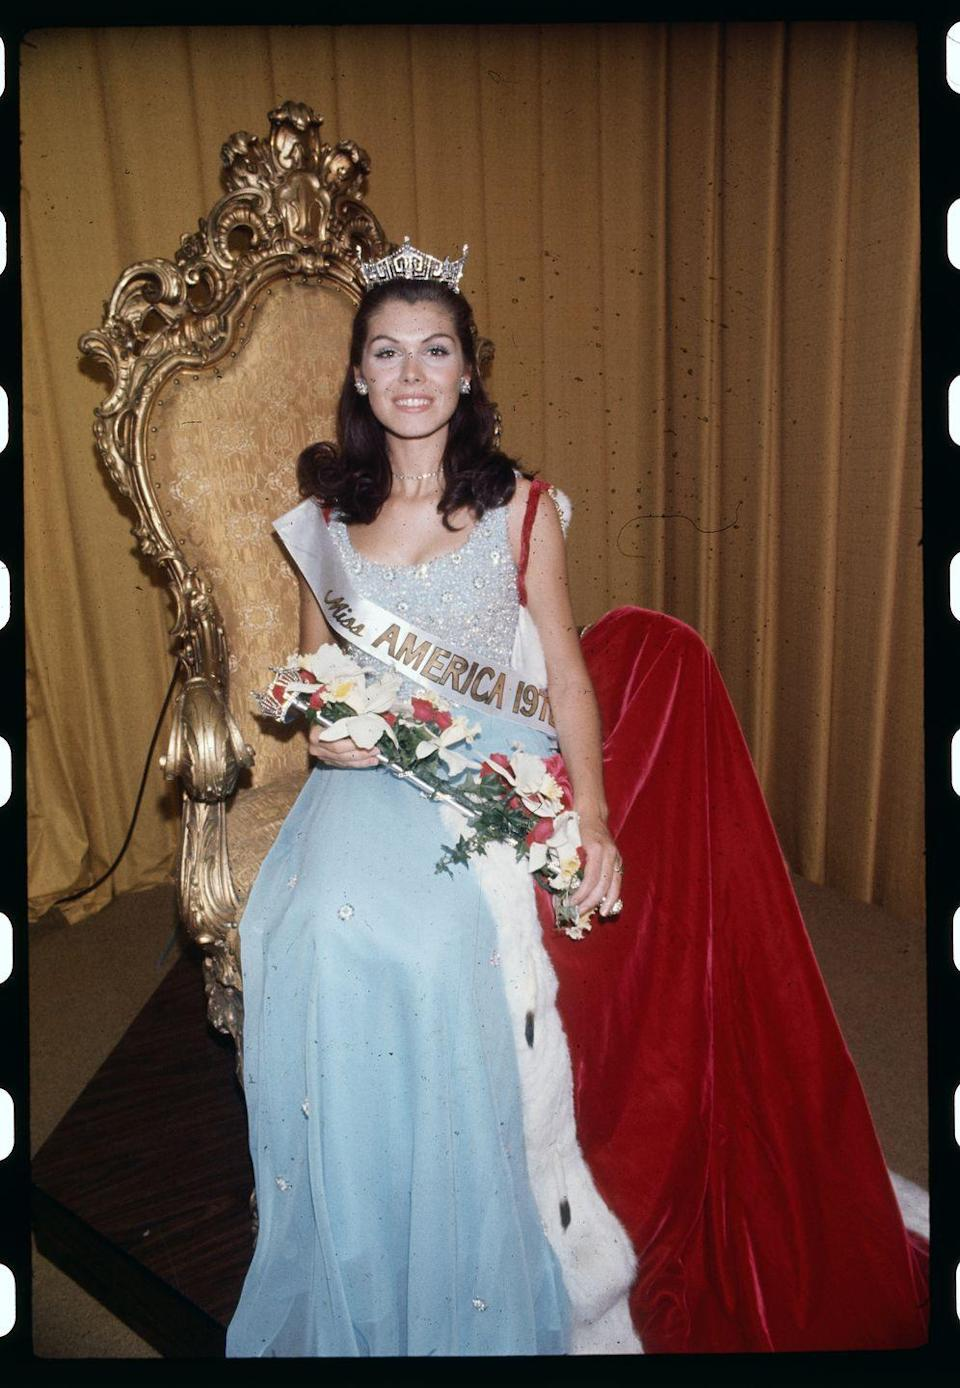 <p>Laurie Lea Schaefer left the judges in awe with this sparkly pale blue gown. </p>